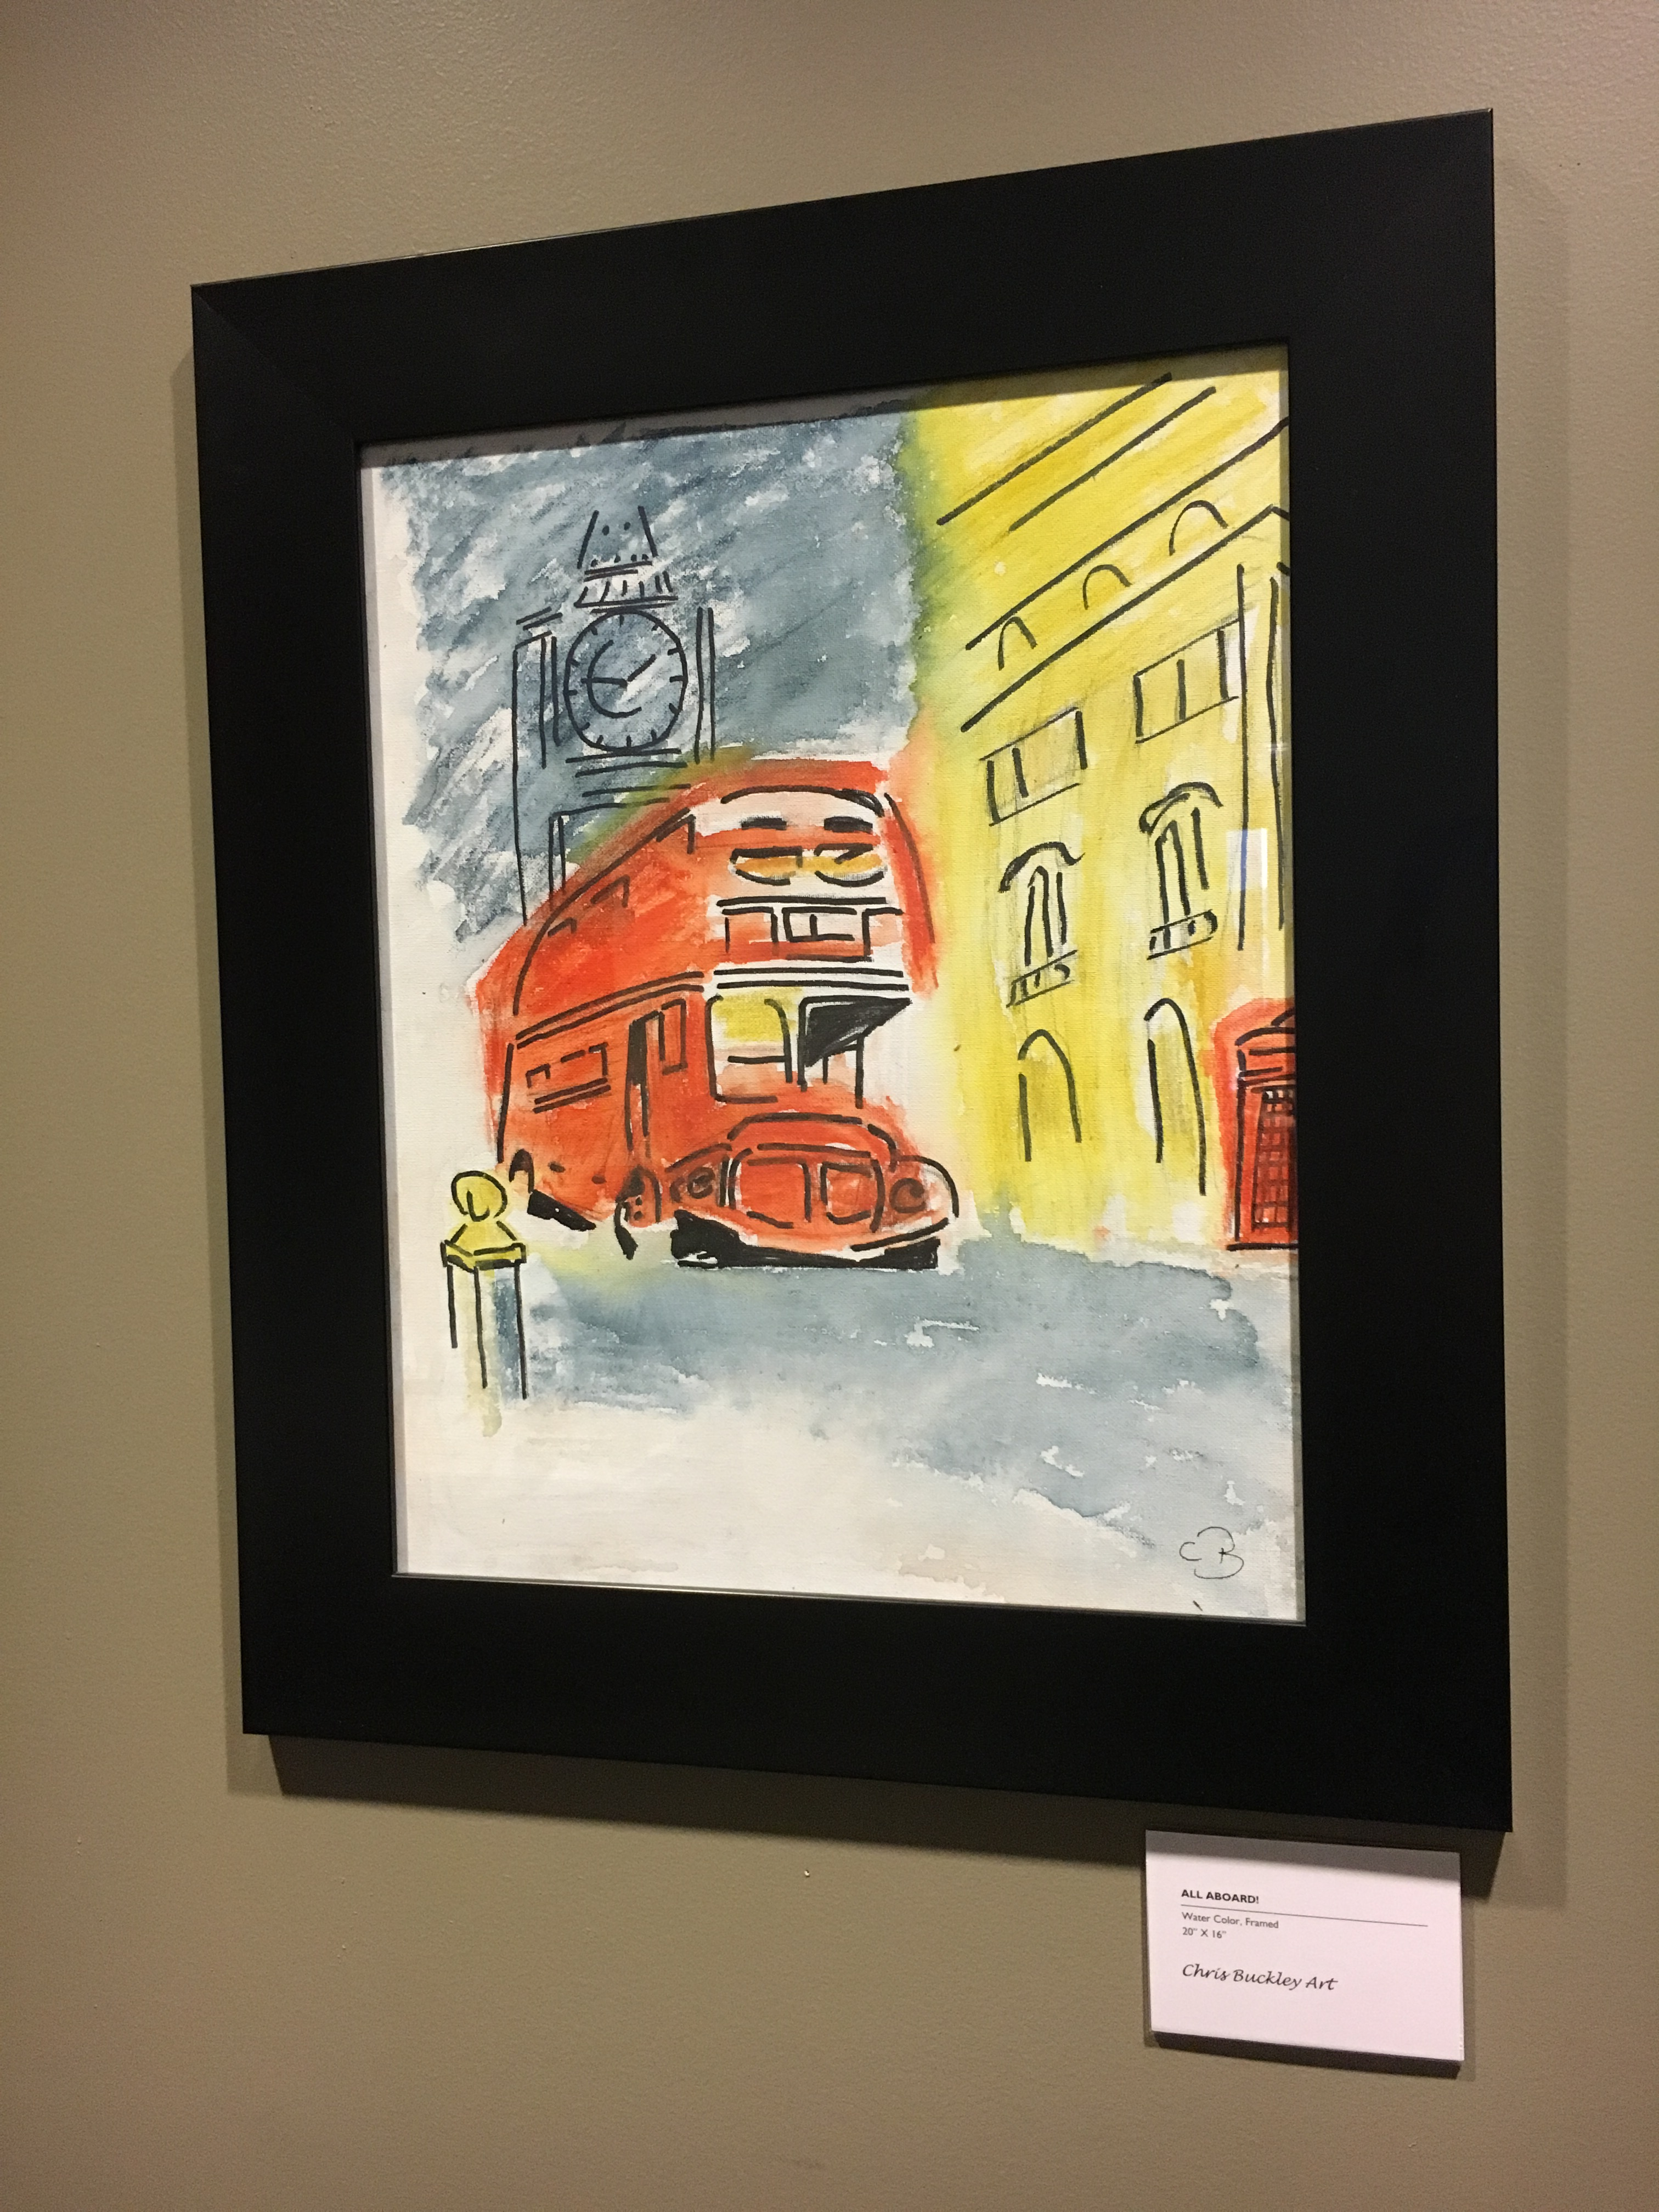 Quarterly rotational art from local artists on display in